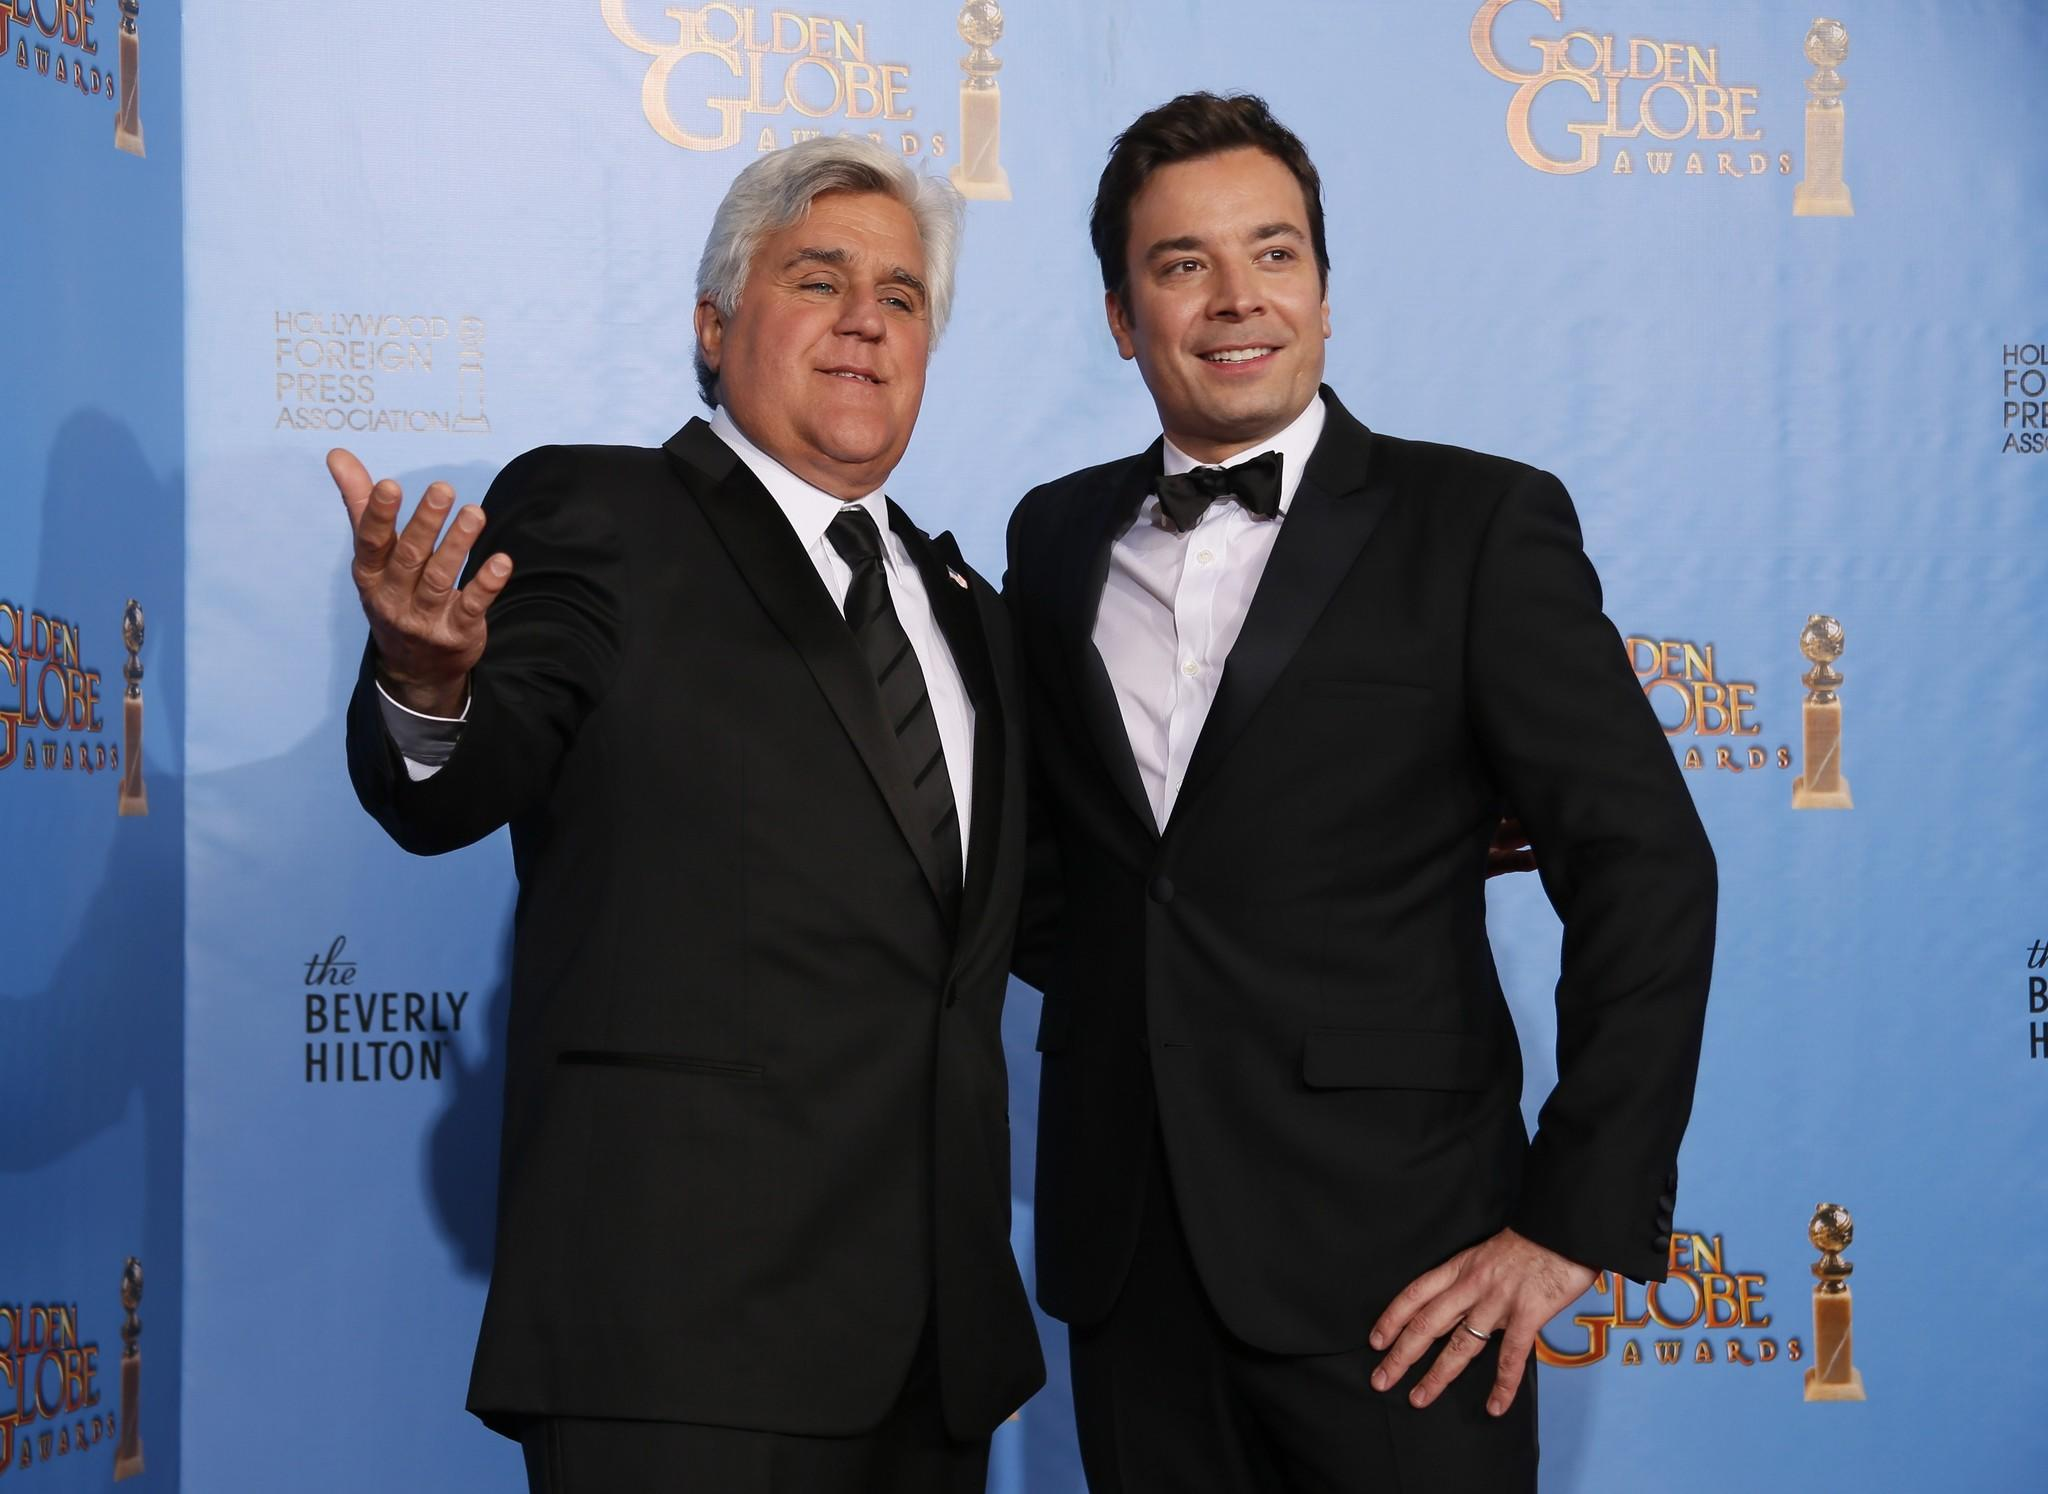 Late night talk show hosts Jay Leno (L) and Jimmy Fallon pose backstage at the 70th annual Golden Globe Awards.